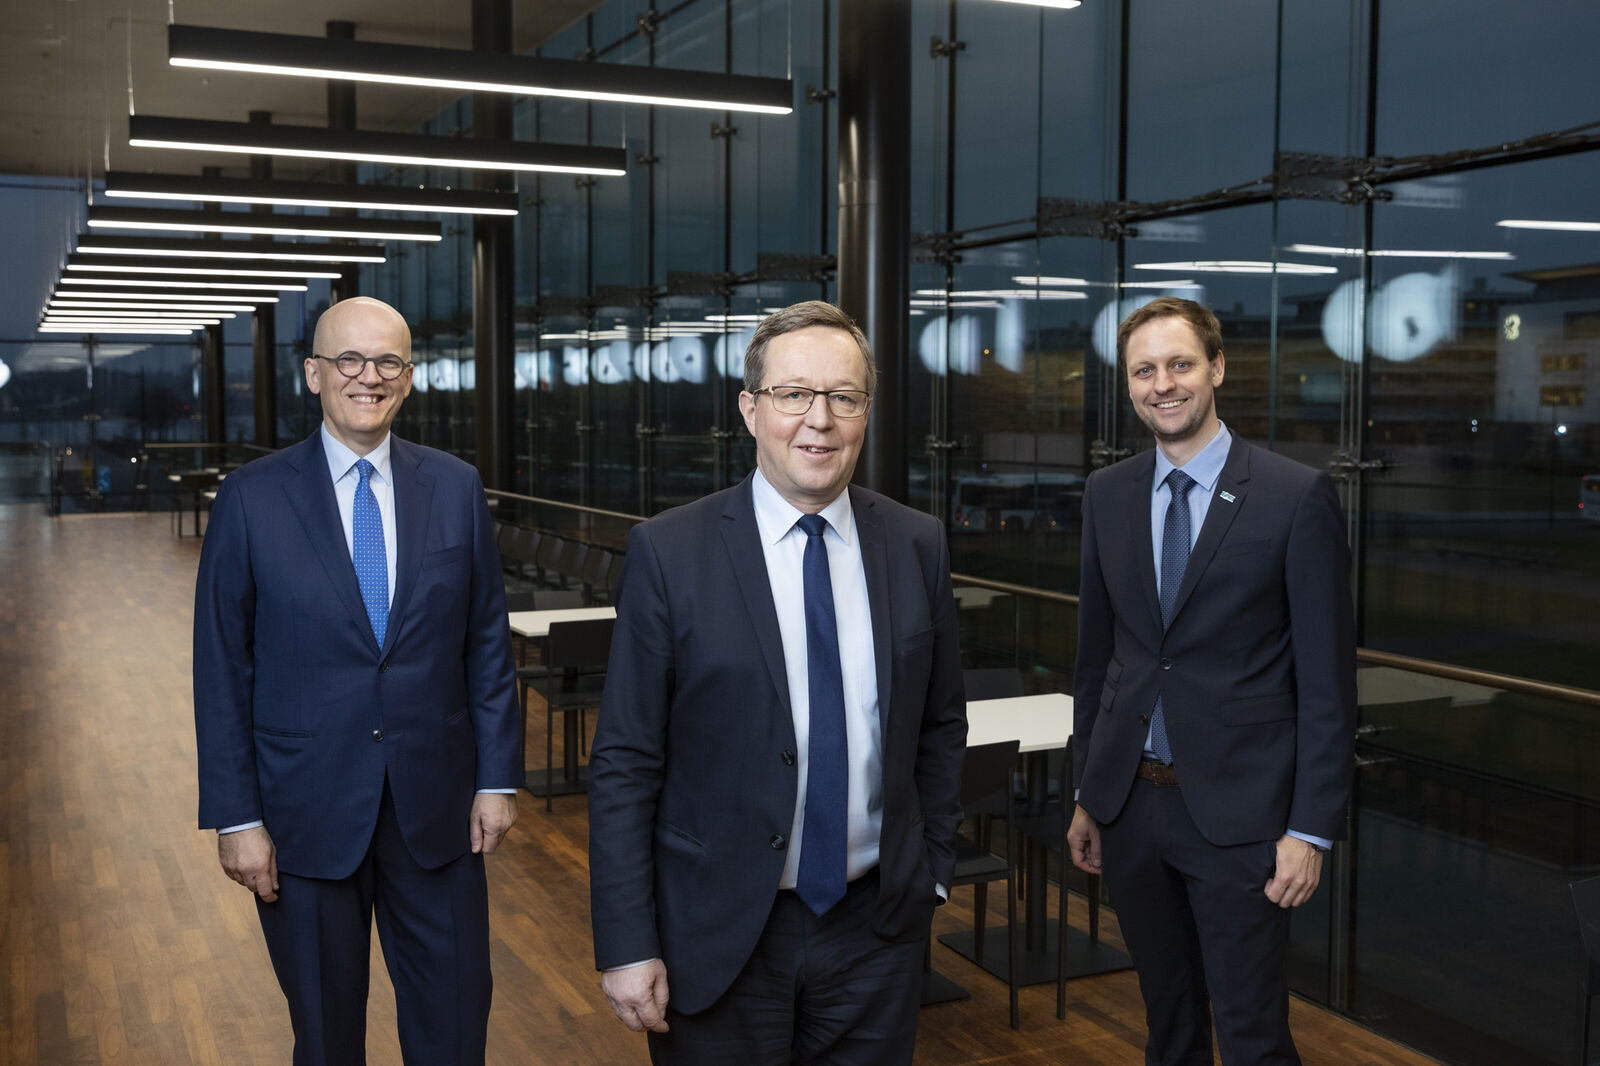 VTT and IQM have entered into an agreement to establish a co-innovation partnership and begin building Finland's first quantum computer.